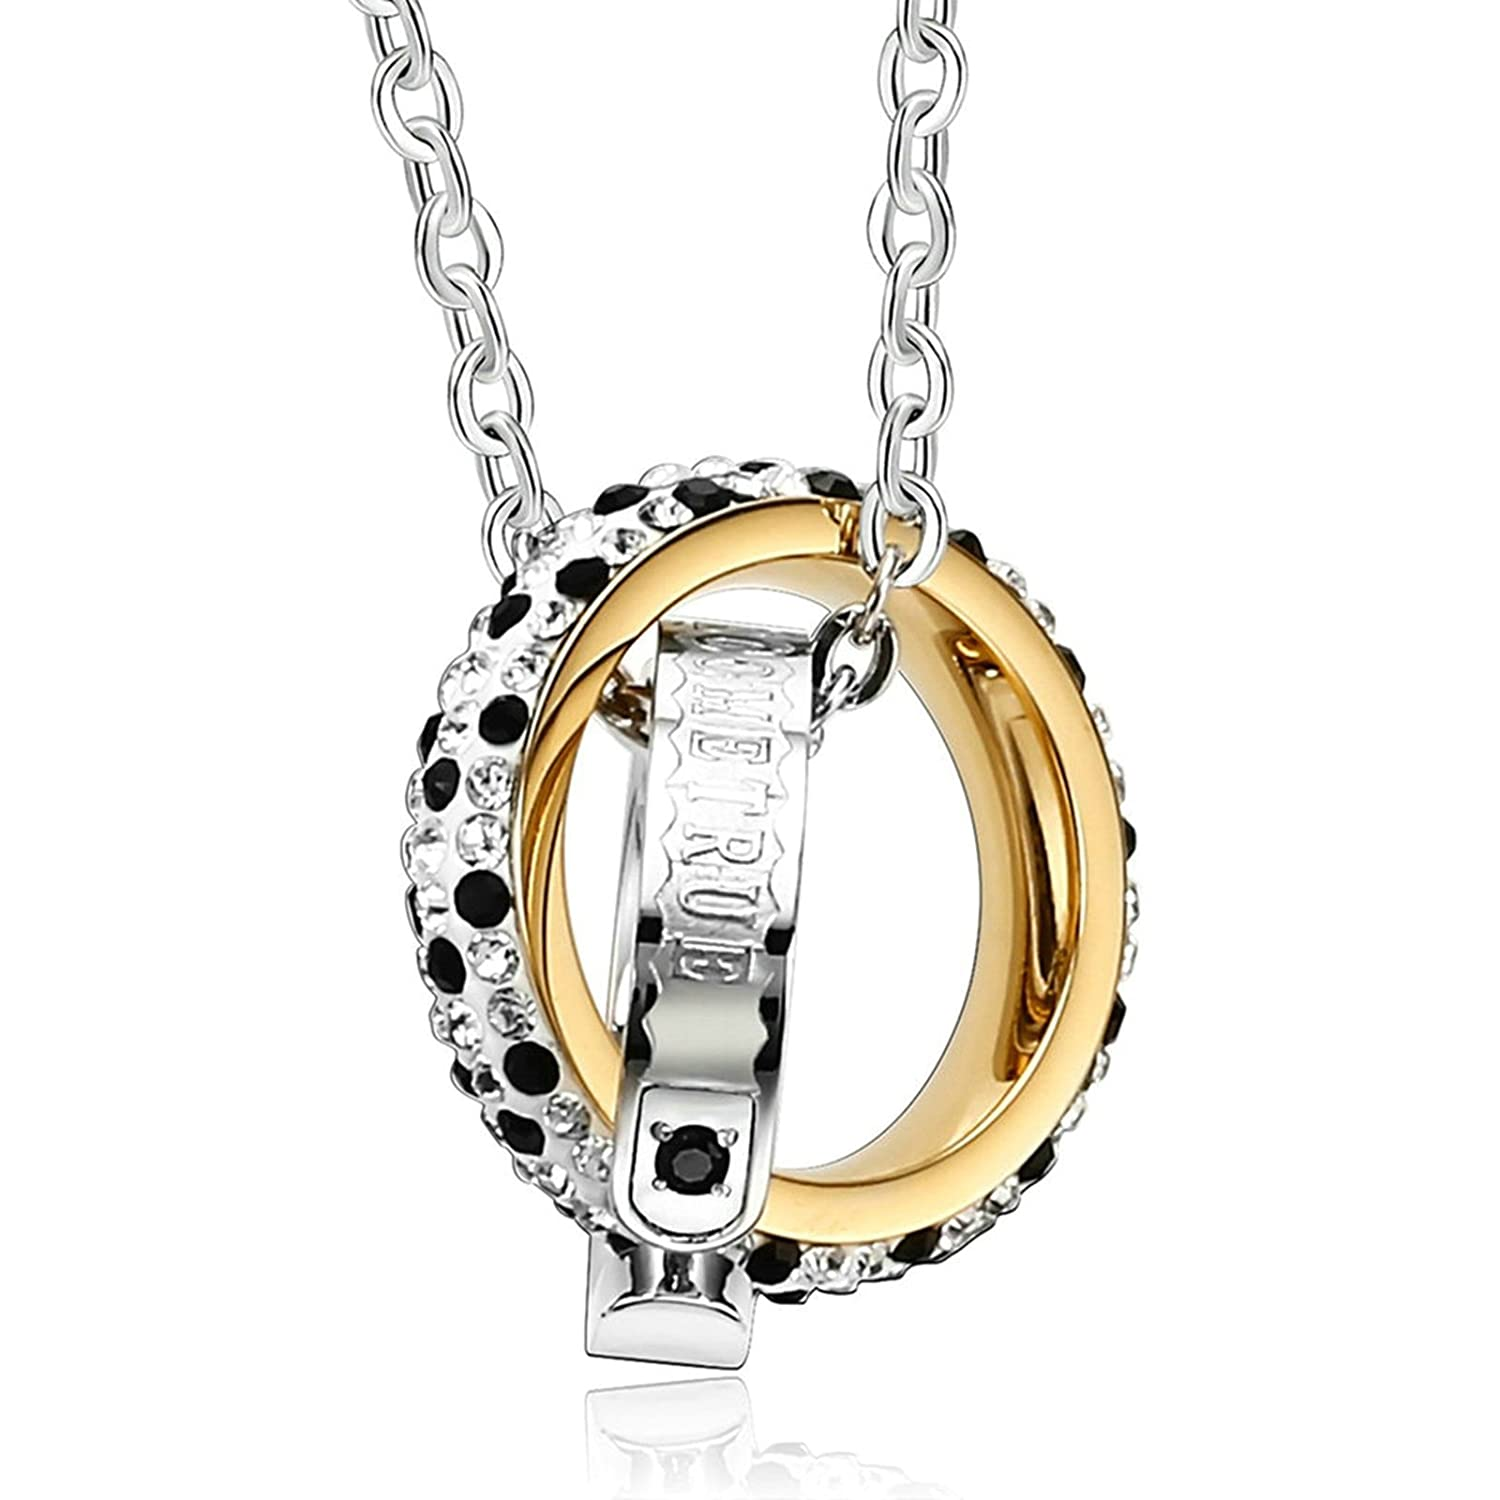 Aooaz Womens Ladies Silver Pendant Necklace Love Interlock Round Retro CZ Necklace Charm Wedding Promise